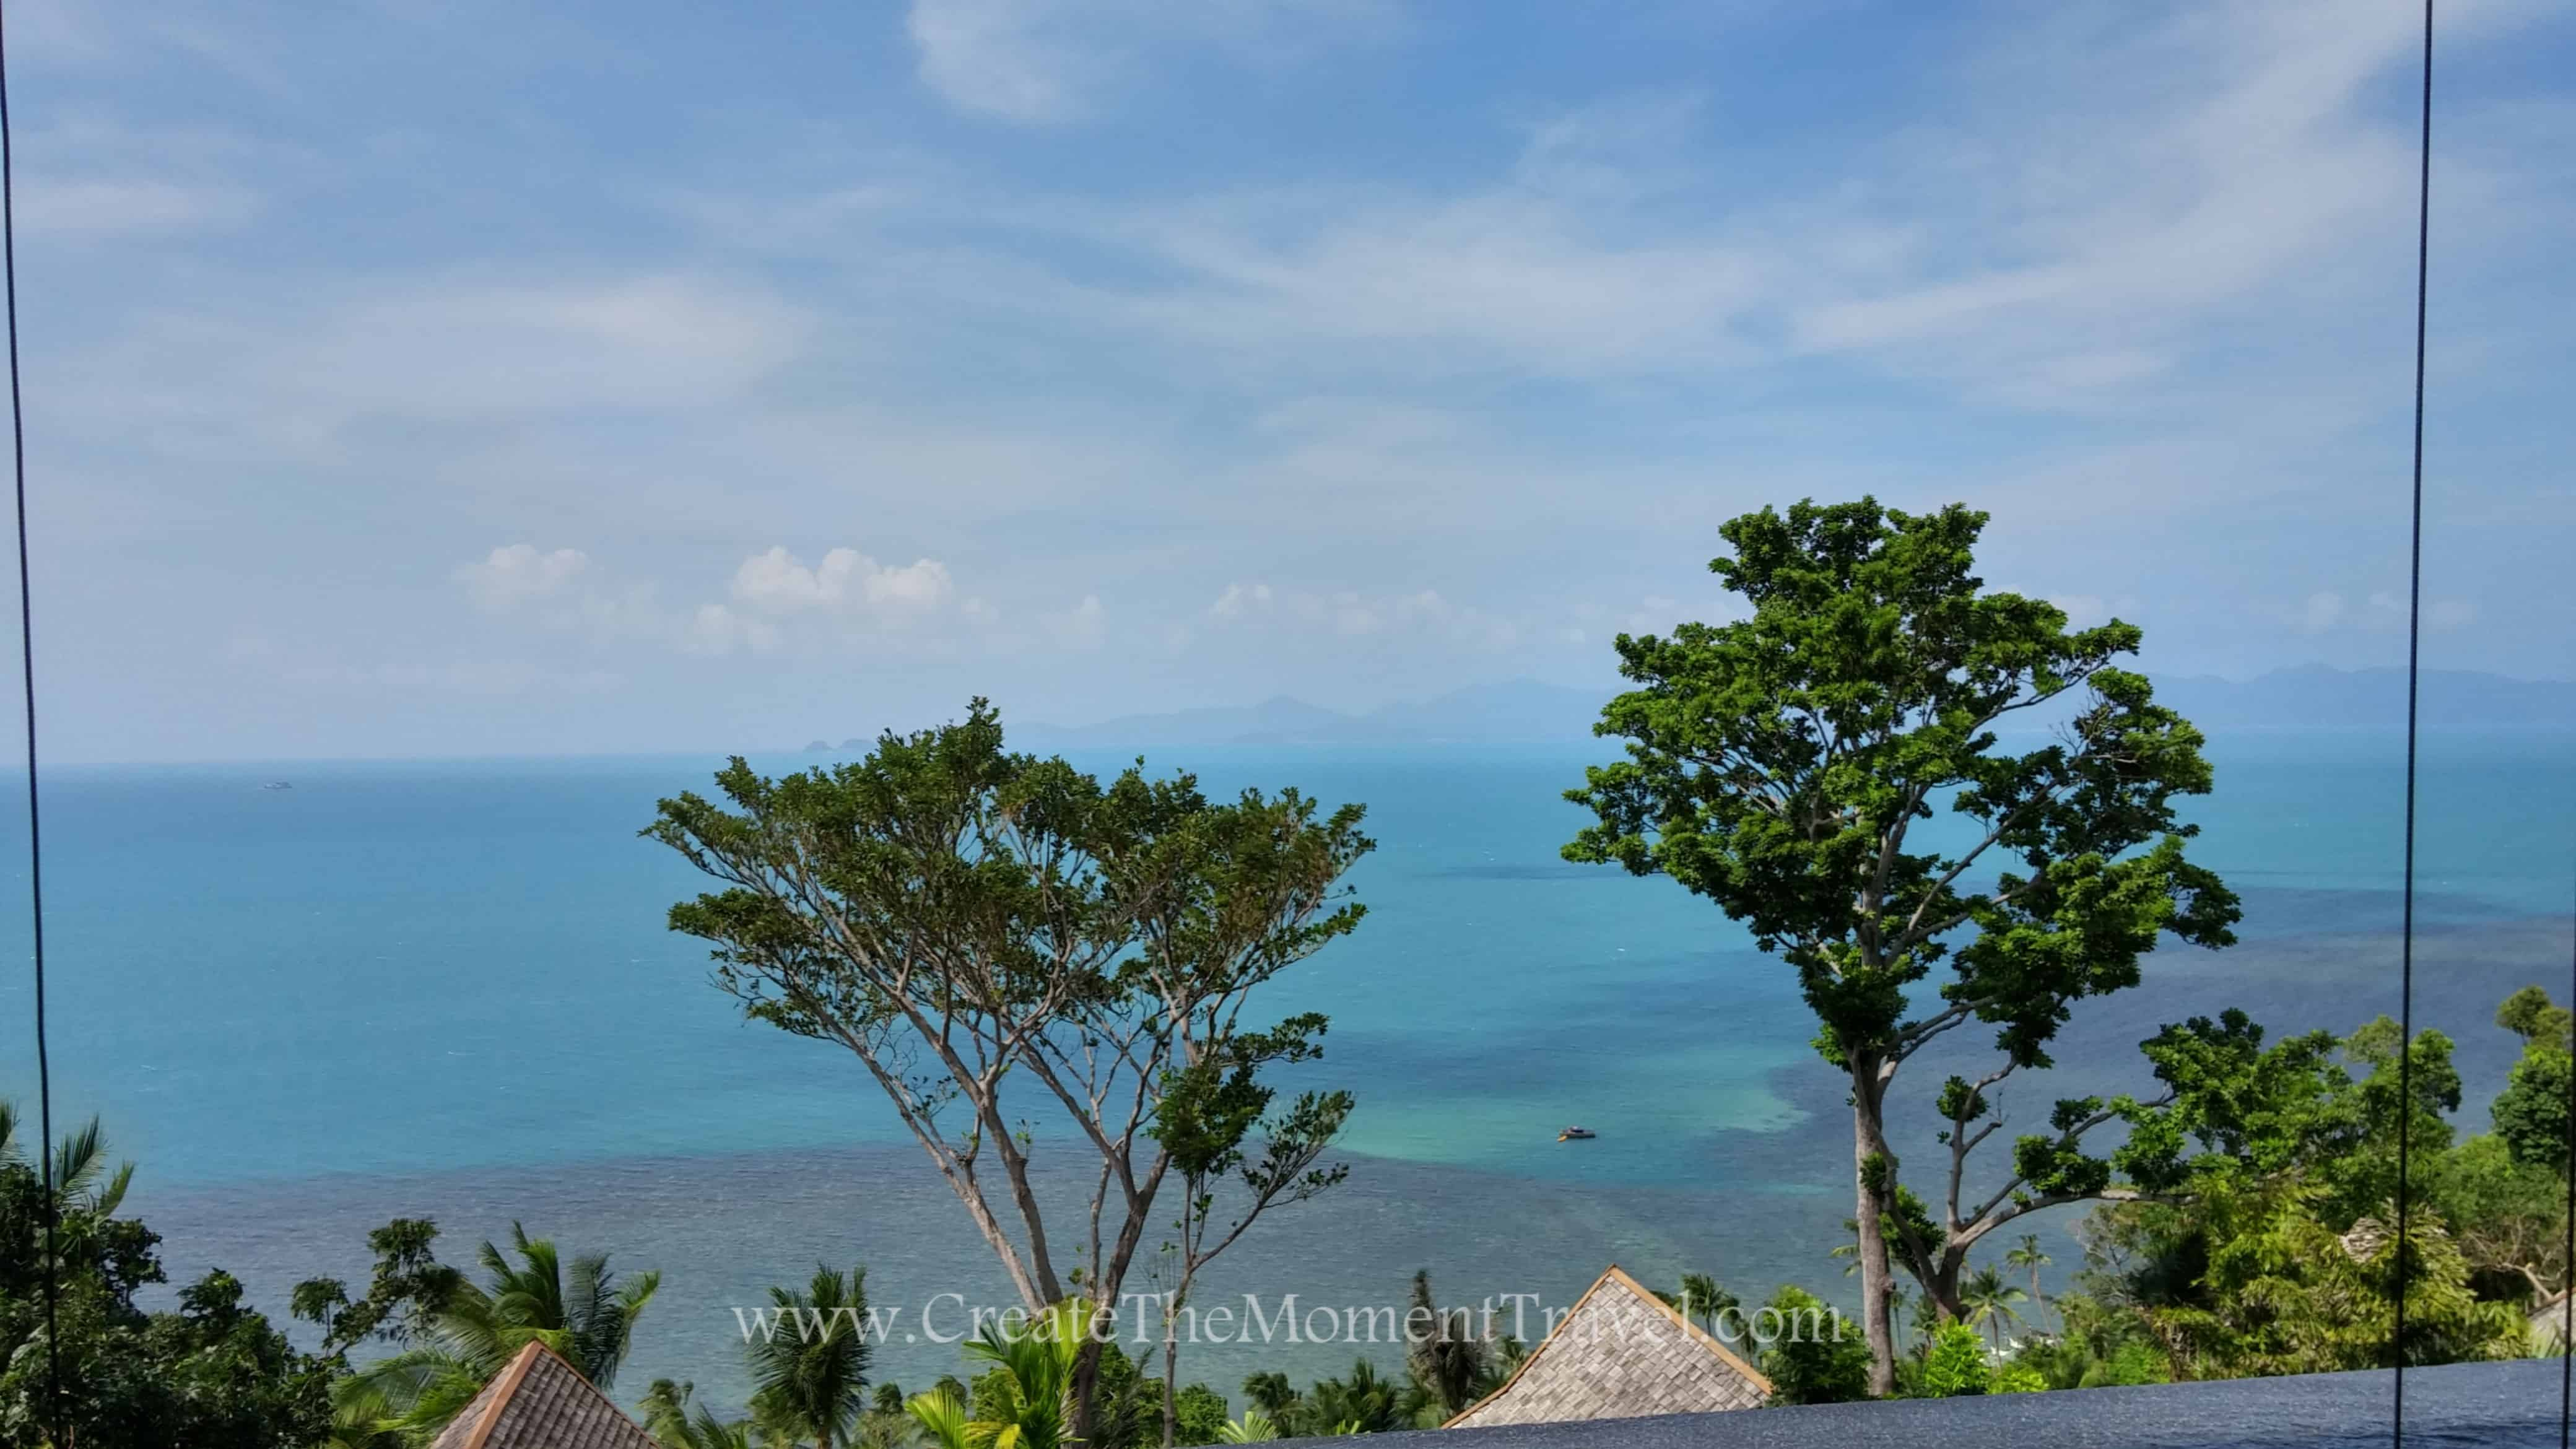 Beach View Koh Samui, Thailand by Create The Moment Travel